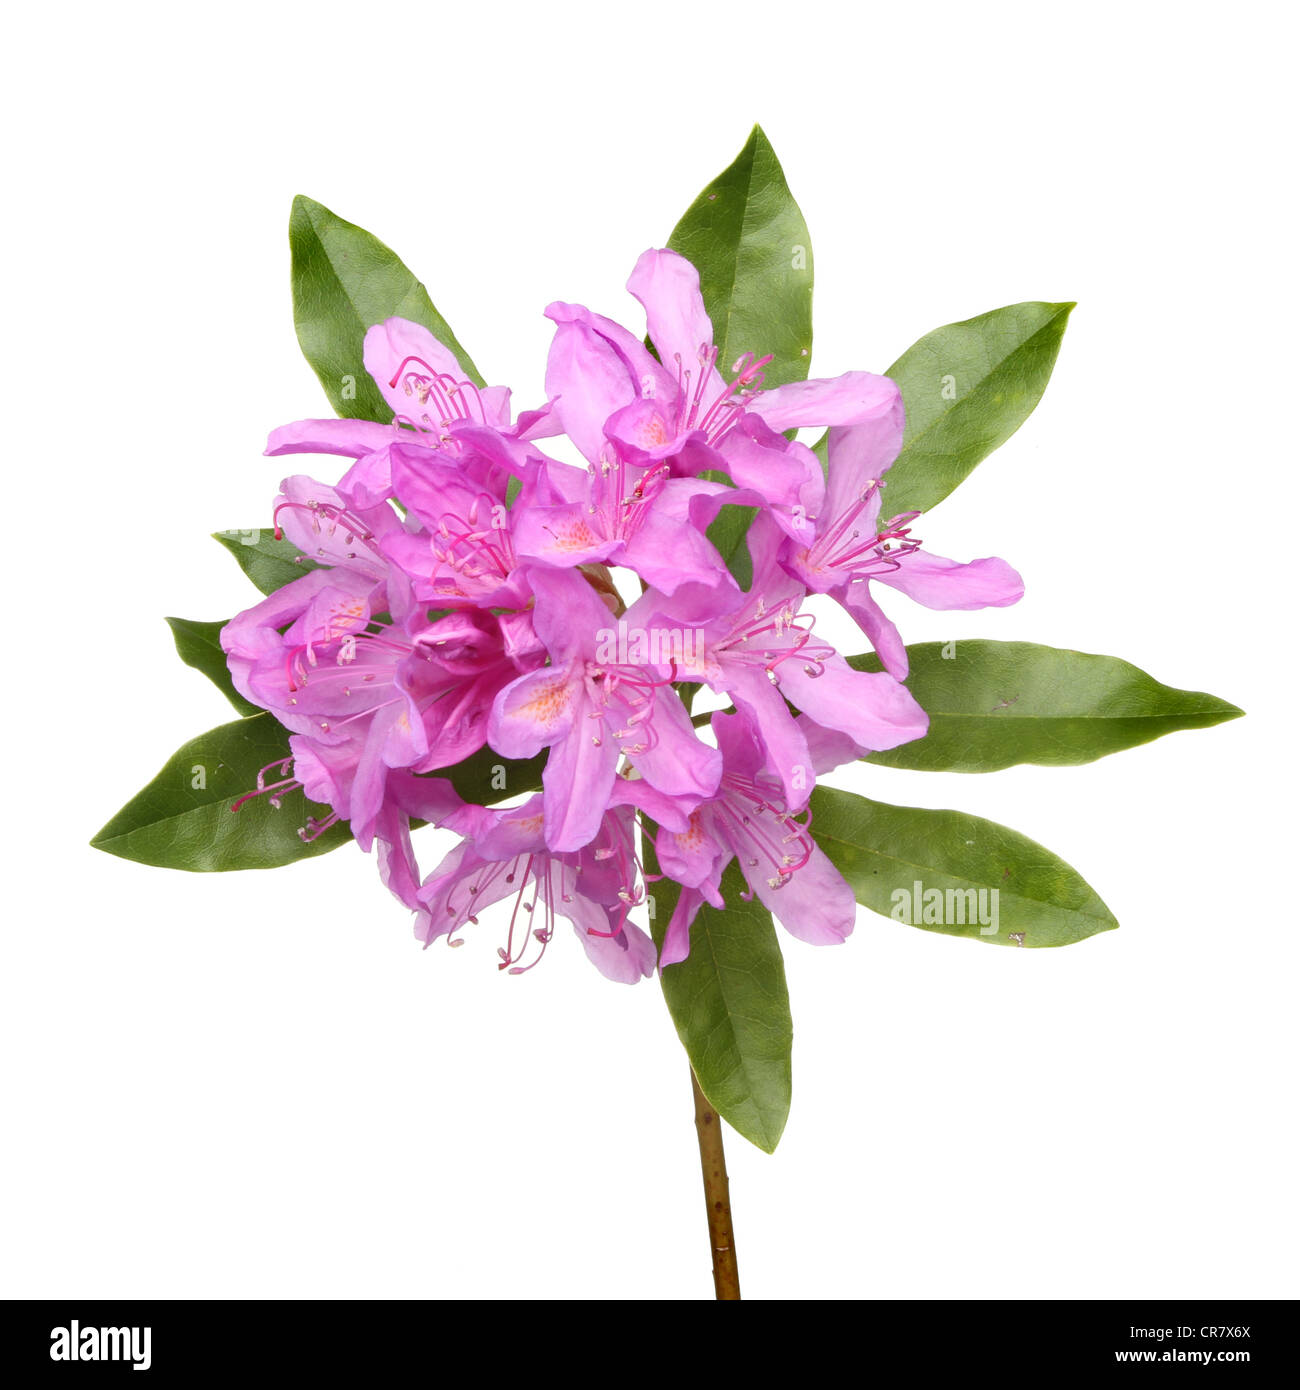 Rhododendron ponticum purple flowers and leaves isolated against white - Stock Image